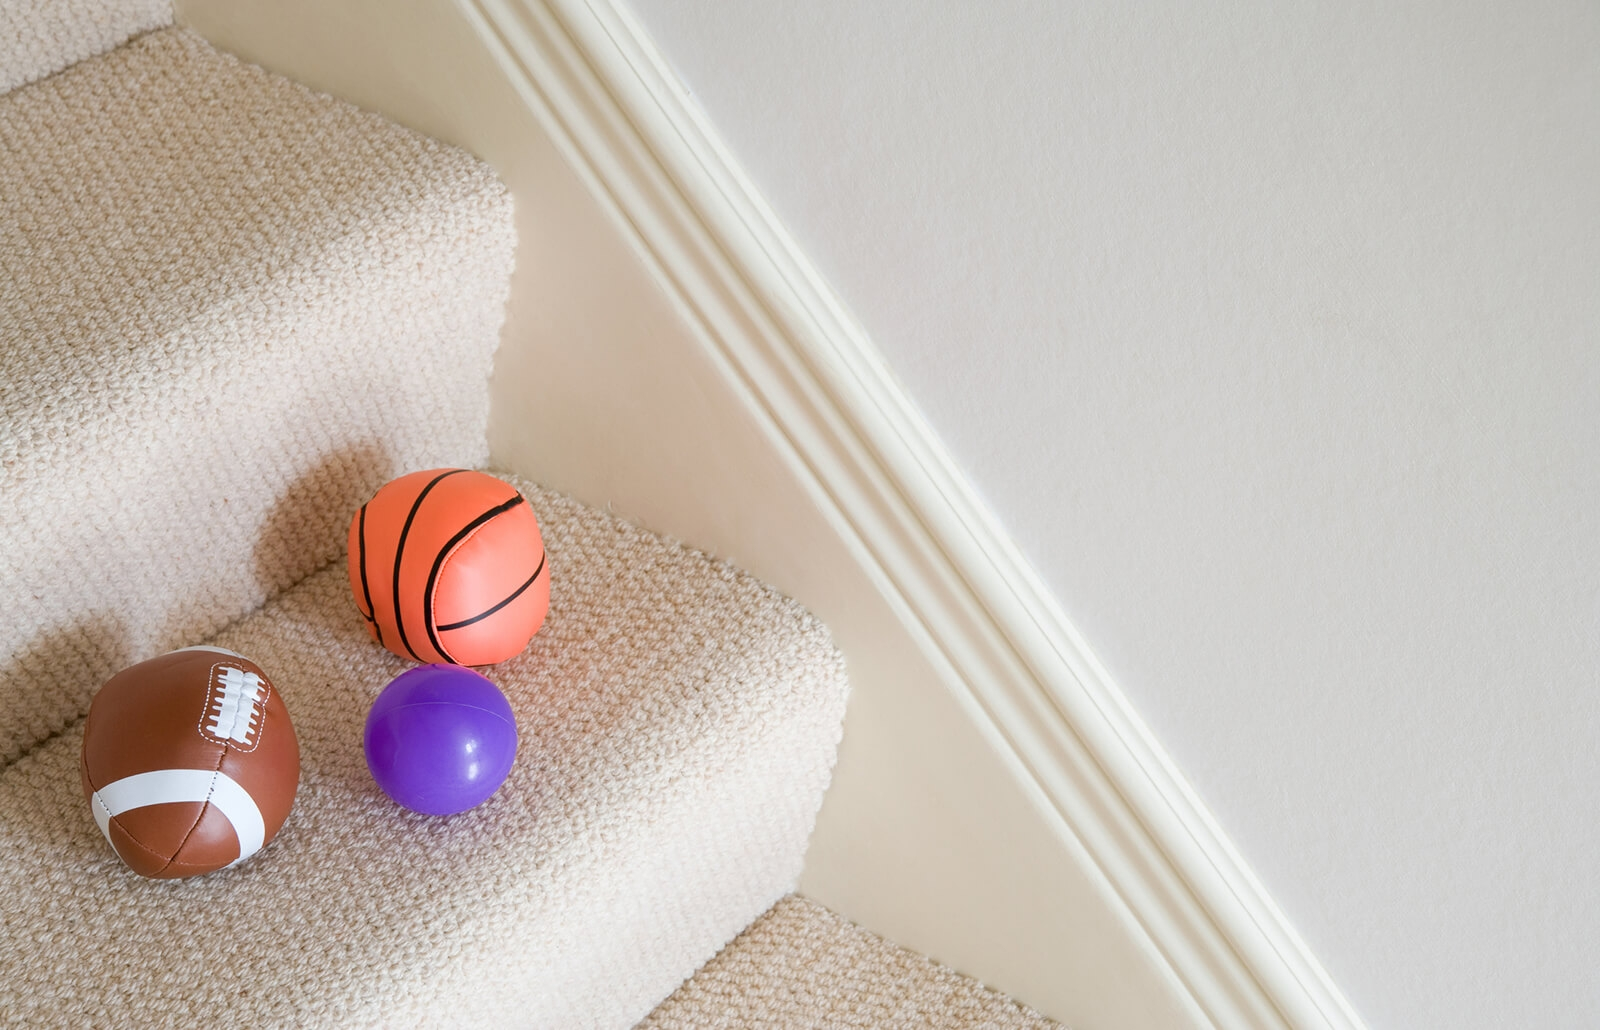 How To Choose The Best Carpet For Your Stairs Lovetoknow | Best Kind Of Carpet For Stairs | Rug | Hardwood | Stair Runners | Hallway | Berber Carpet